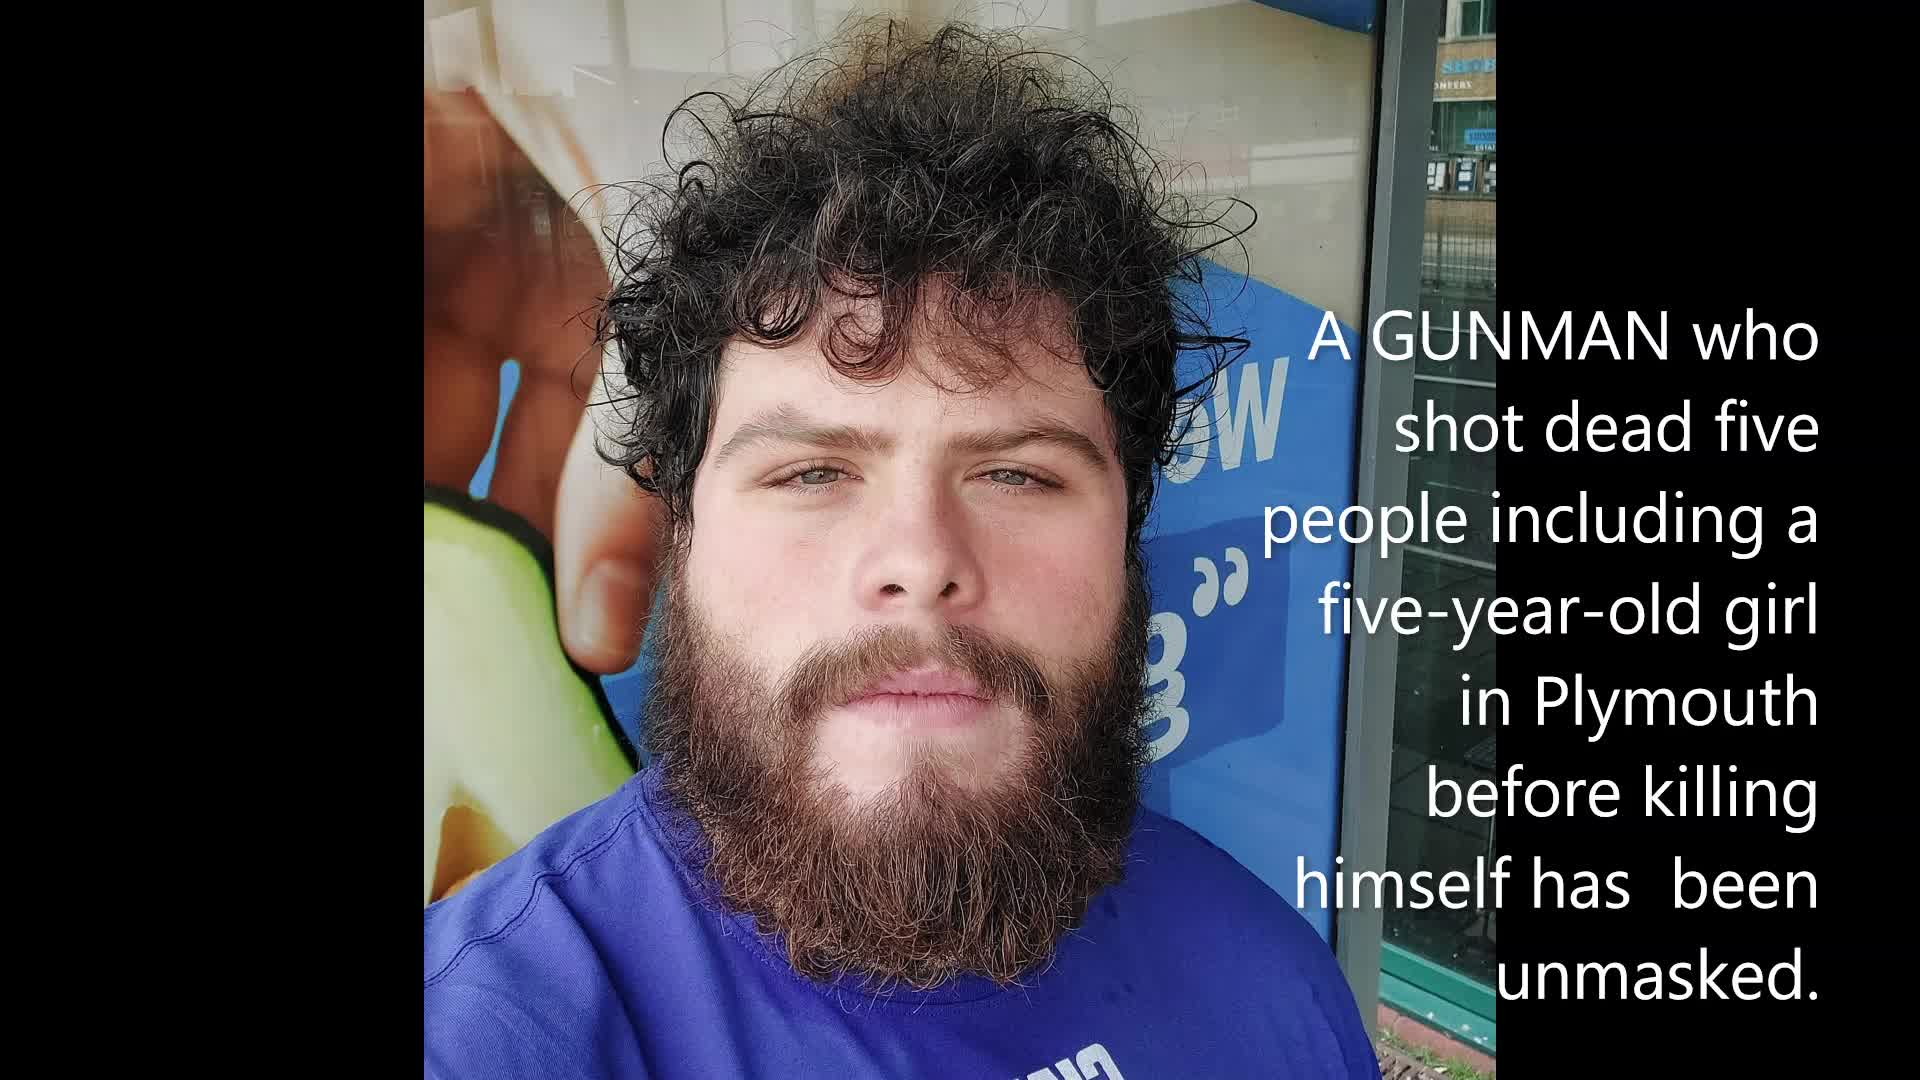 Plymouth Mass Shooter Jake Davison - another jewish/freemasonic psyop?  Let's look at the numbers